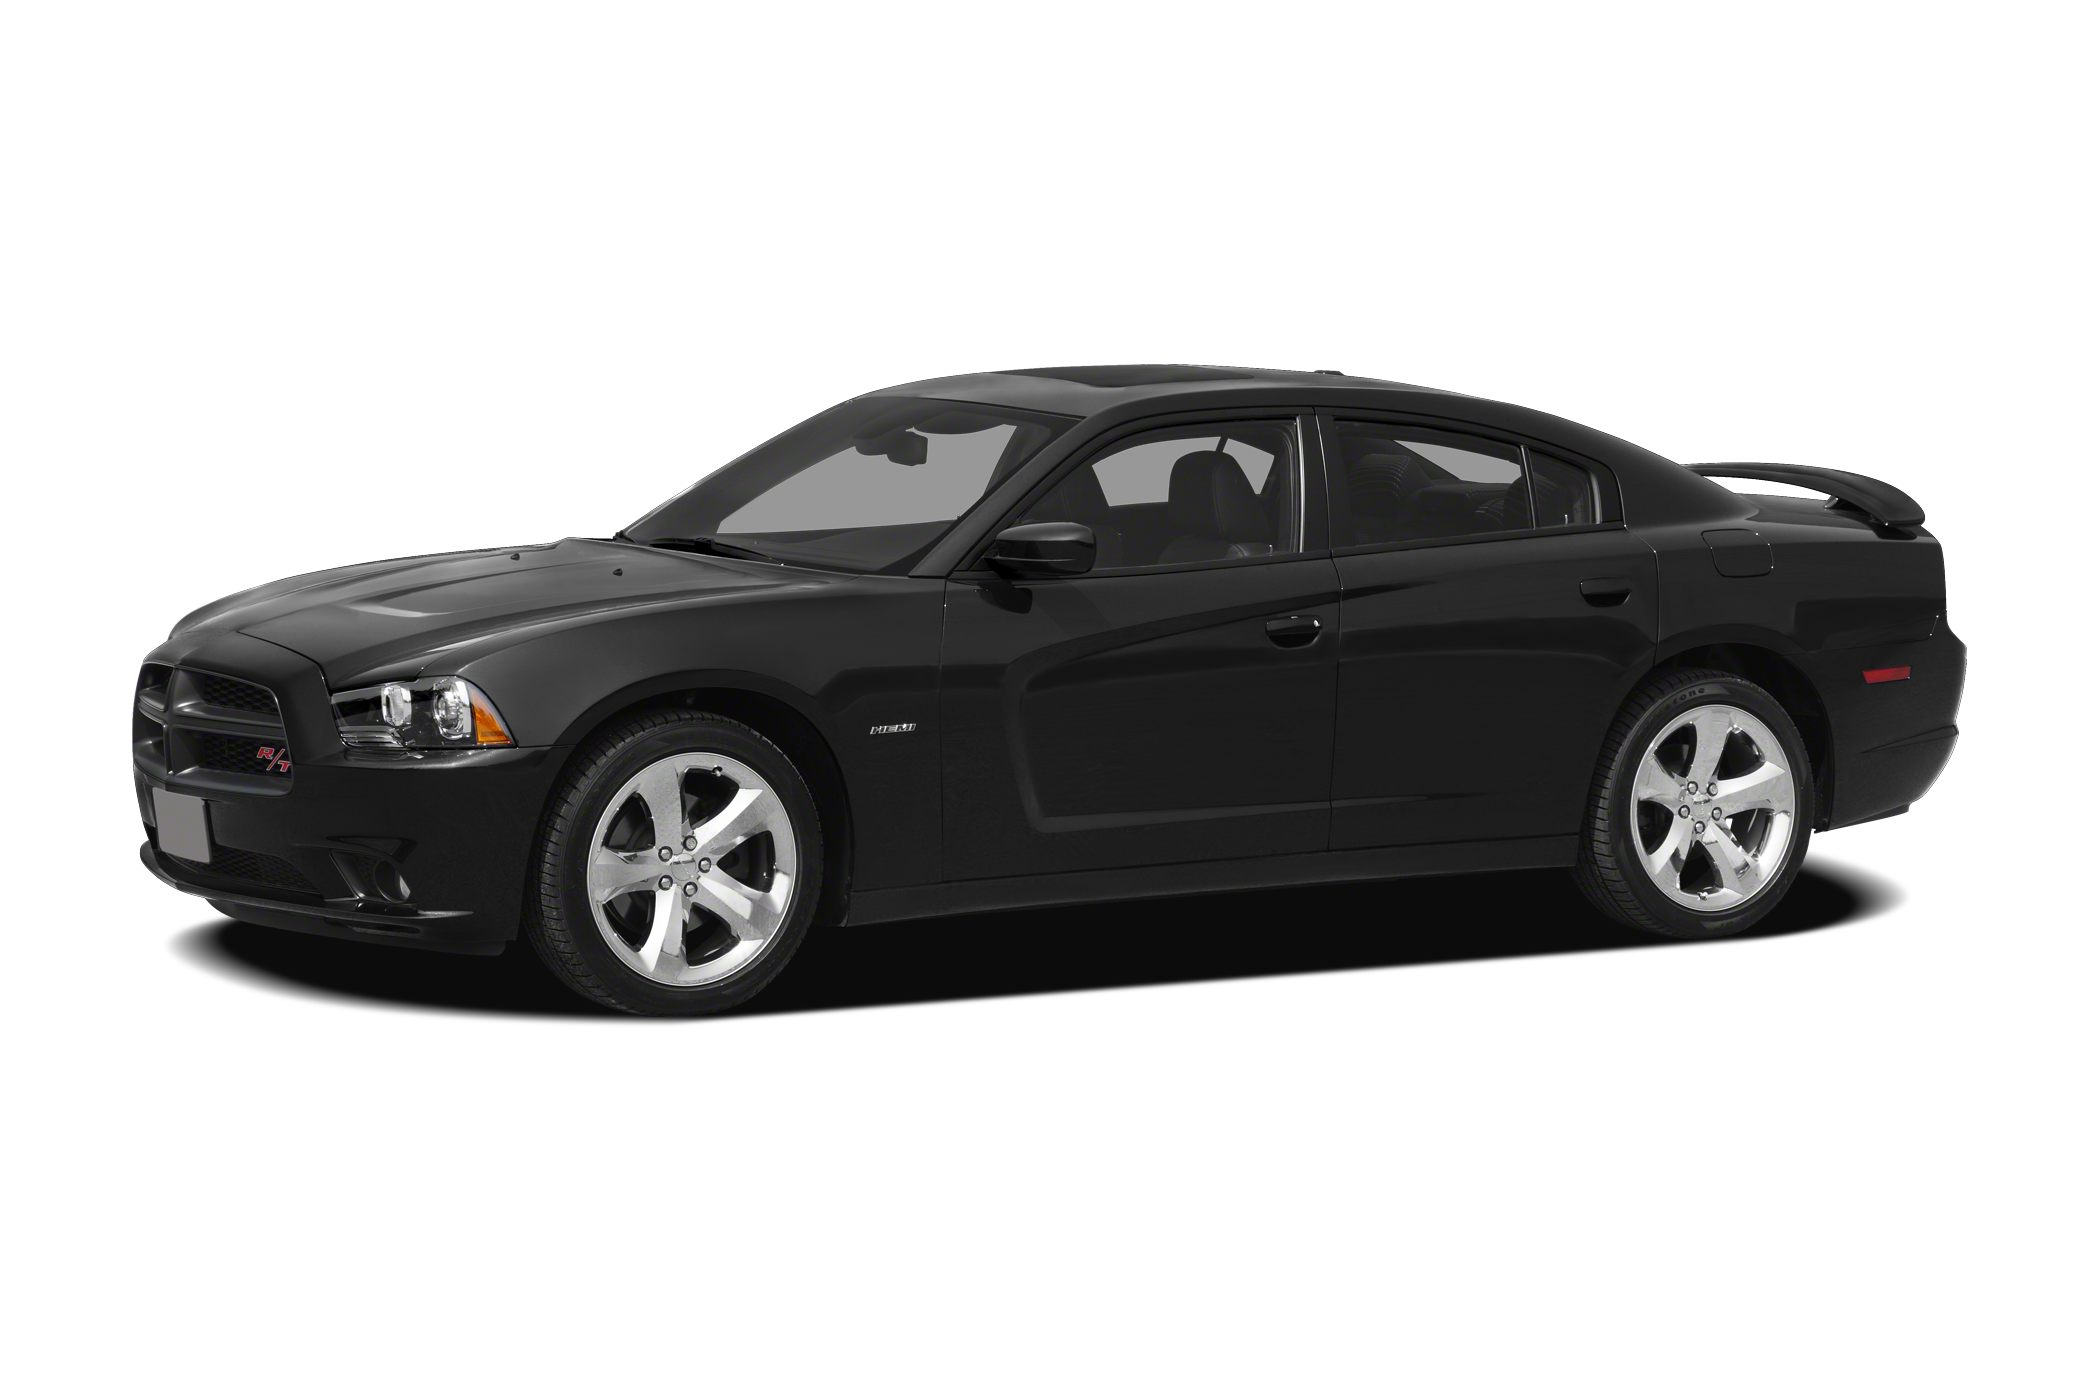 2012 Dodge Charger R/T Sedan for sale in Clarksville for $0 with 59,907 miles